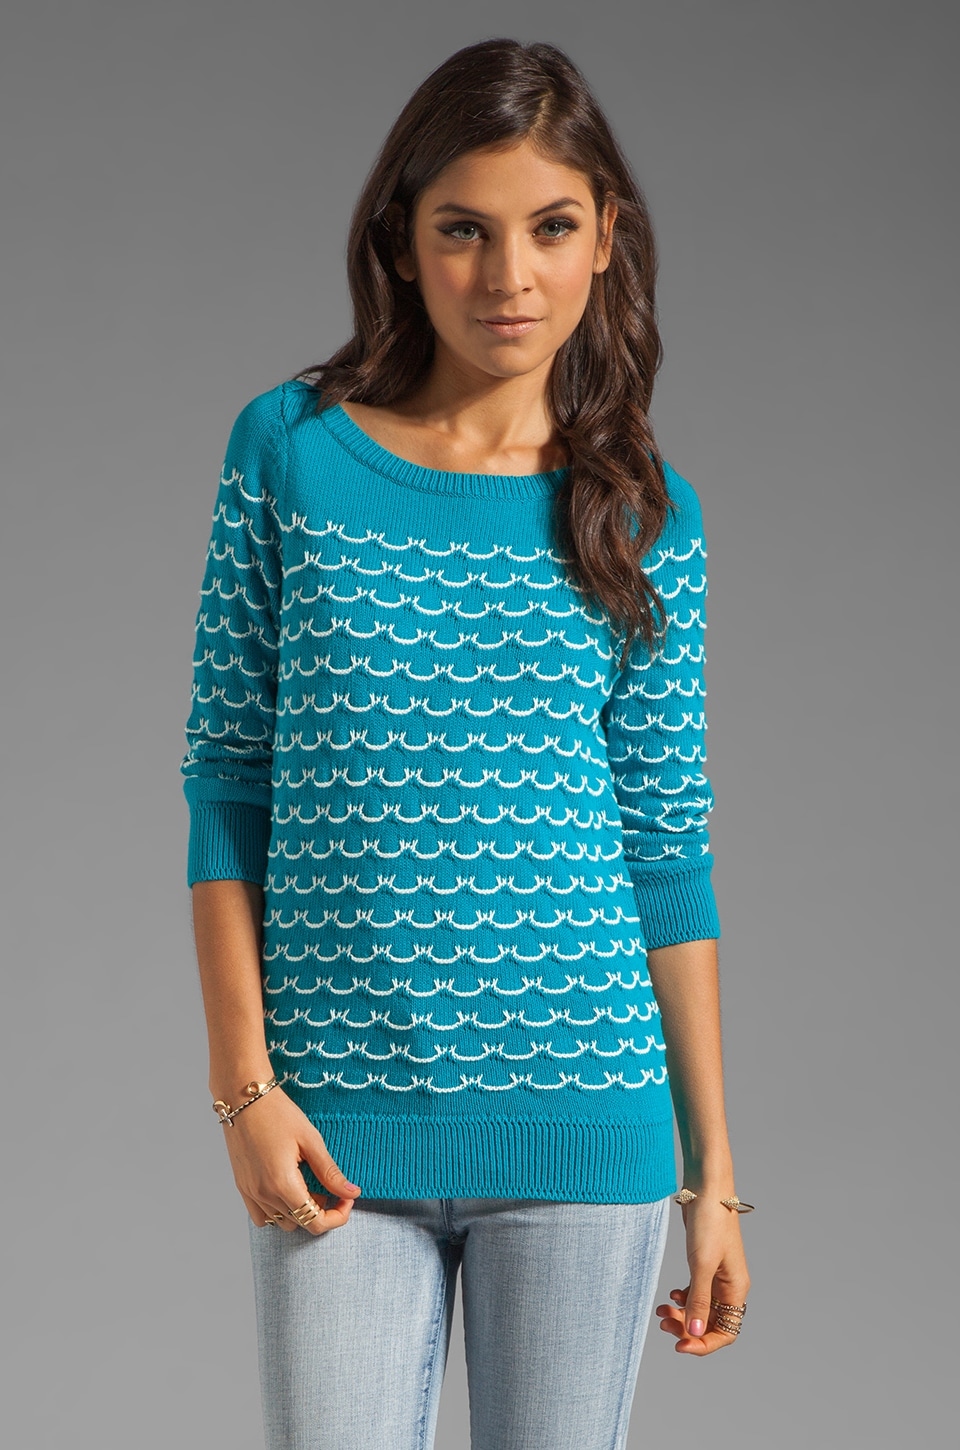 MILLY November Knit Sailor Stitch Sweater in Aqua and Ecru